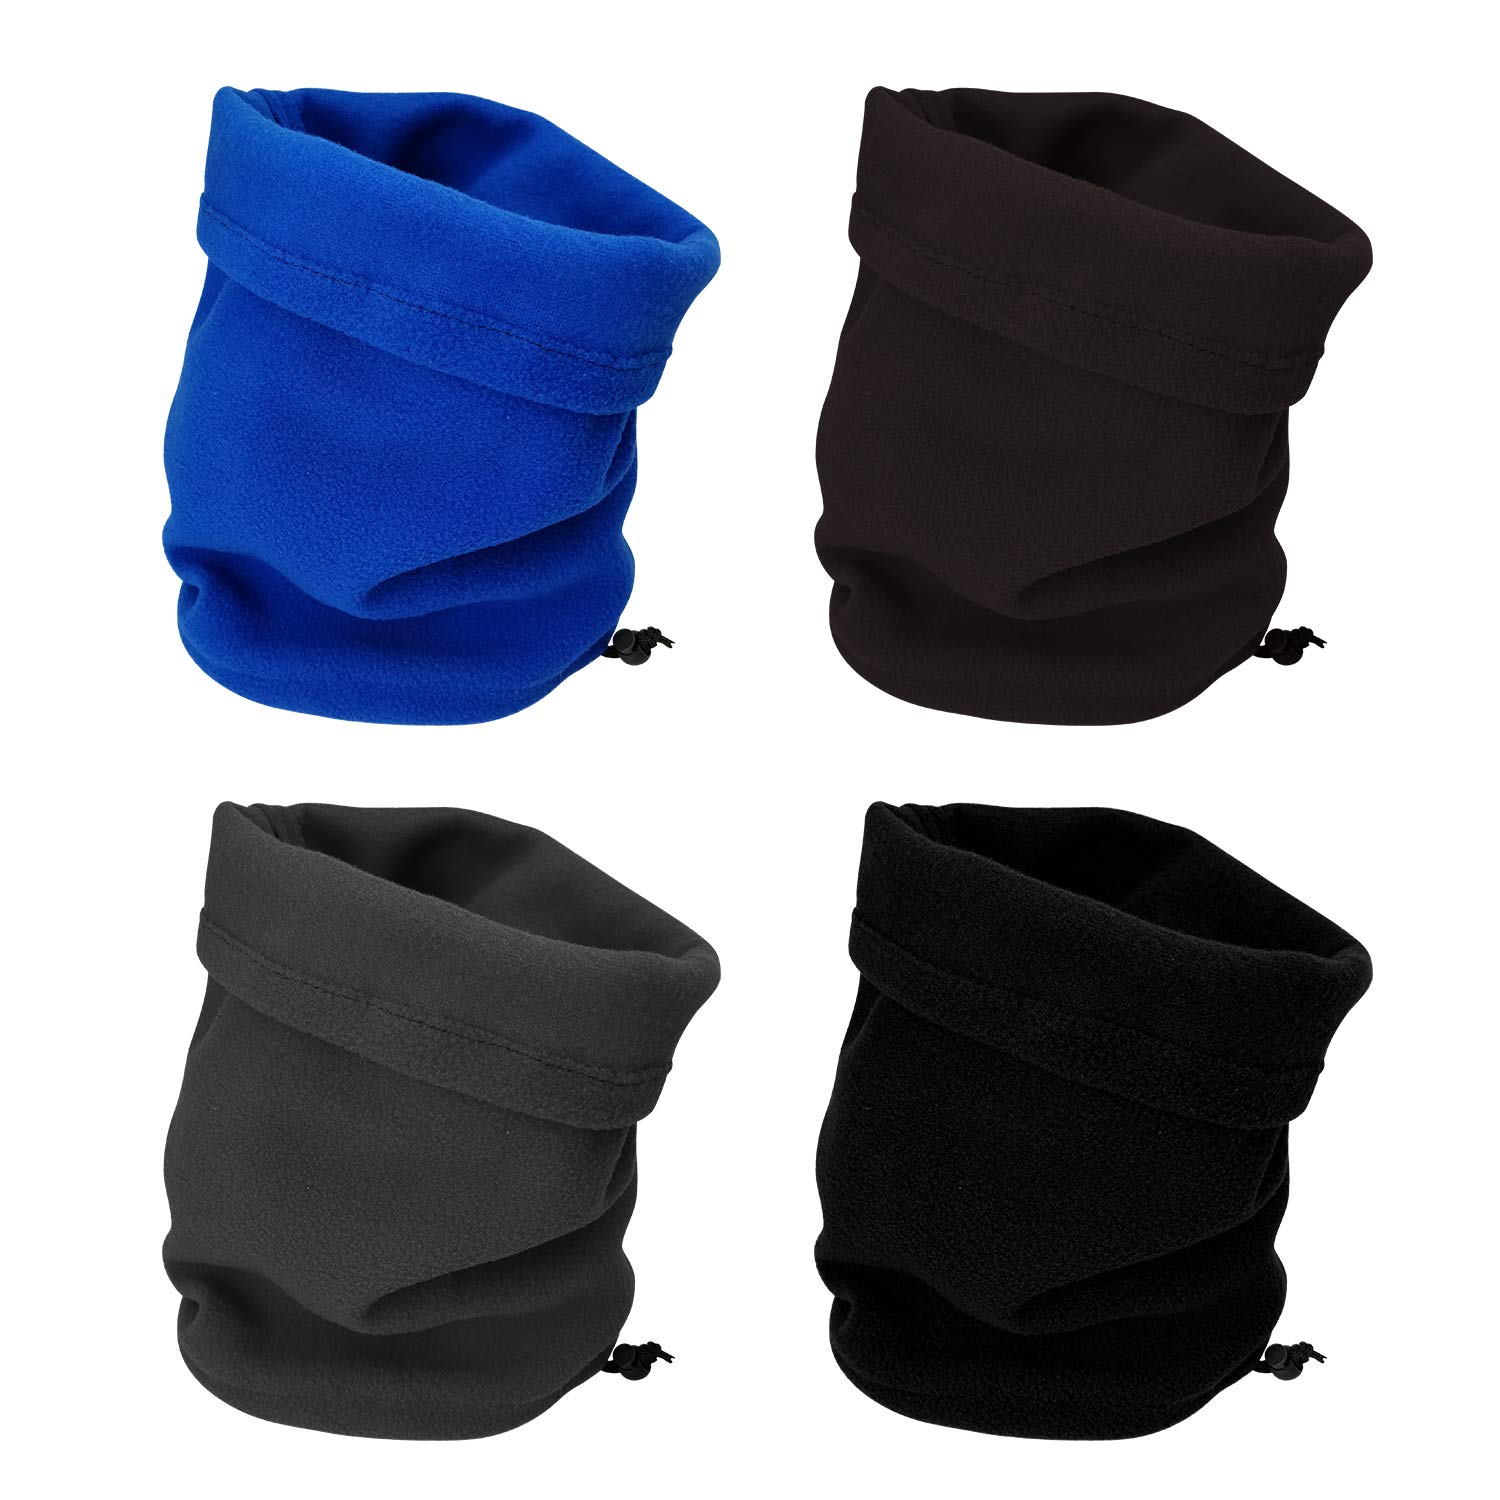 CODOHI 4 Packs Fleece Neck Warmer Windproof Snood Neck Gaiter for Men Women Head Scarf Face Mask for Skiing Hiking Cycling Climbing